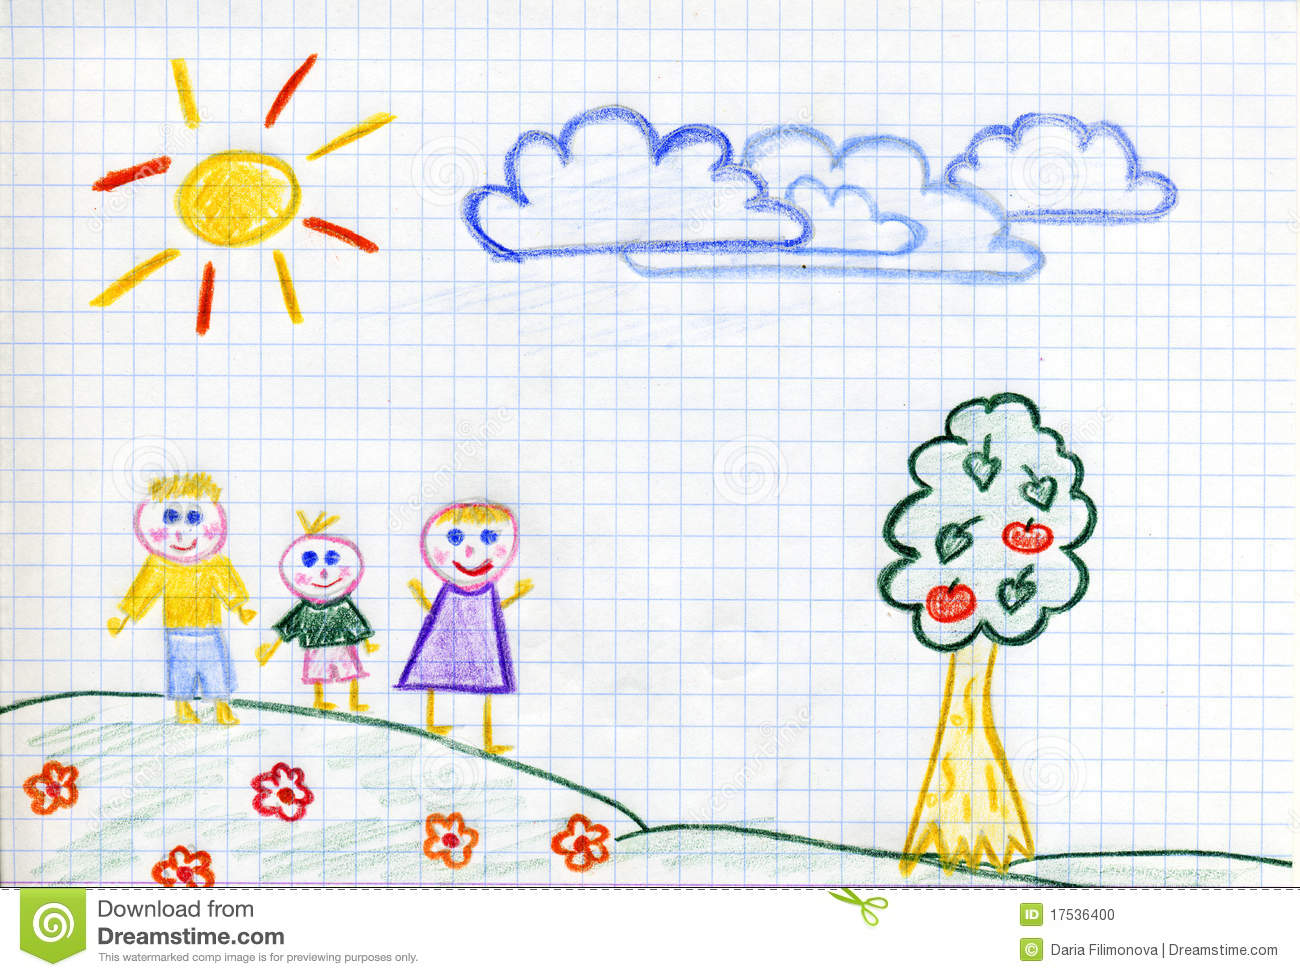 art drawing - Children Drawing Images